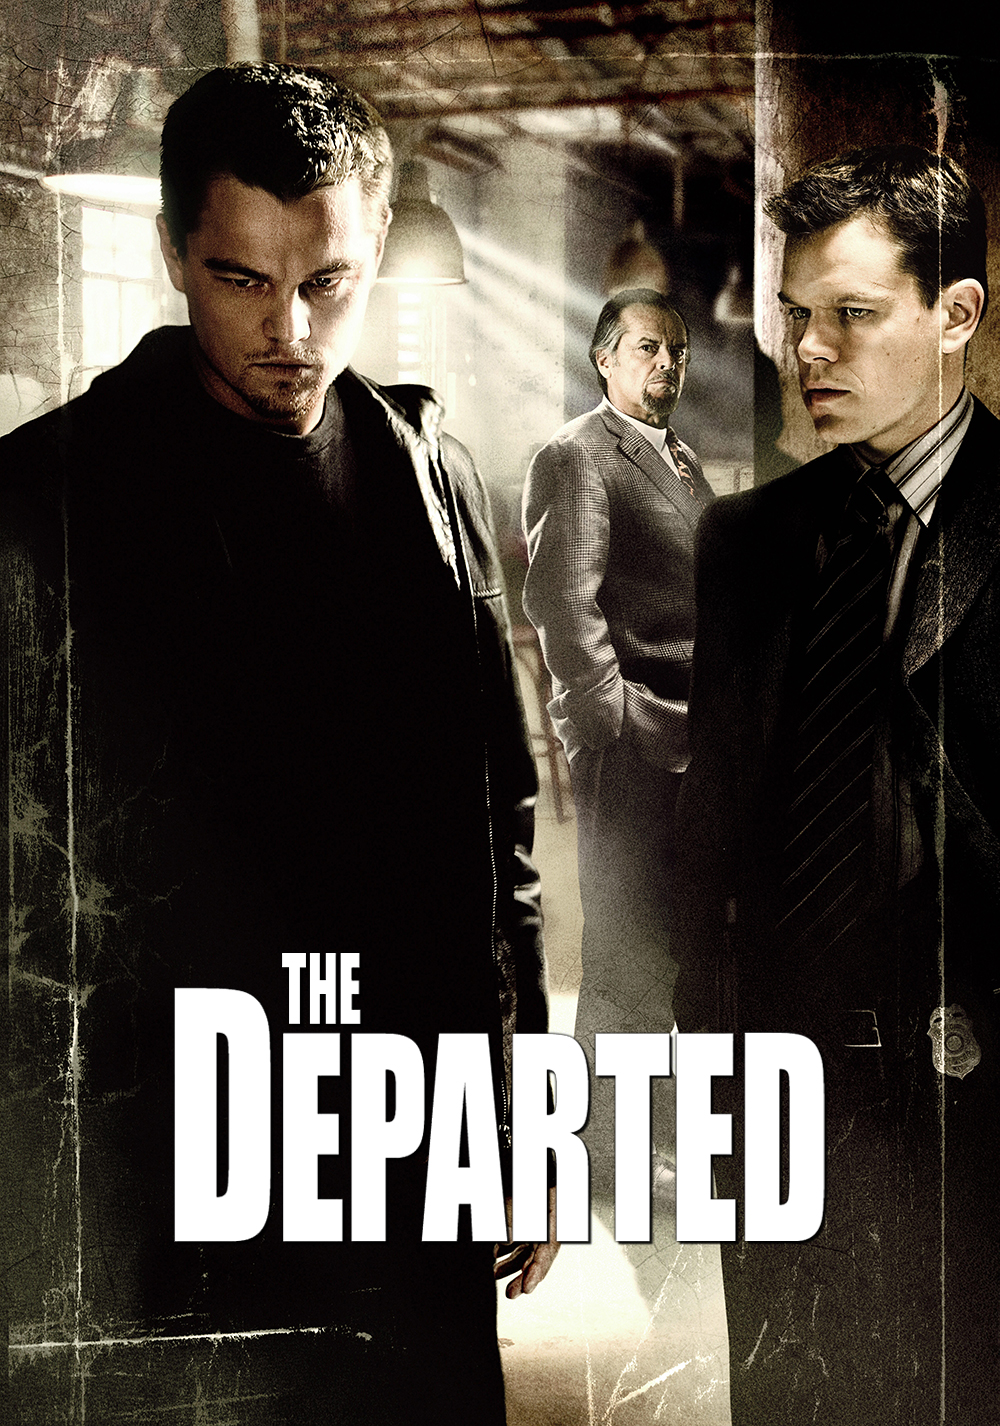 The Departed 2006 Cut